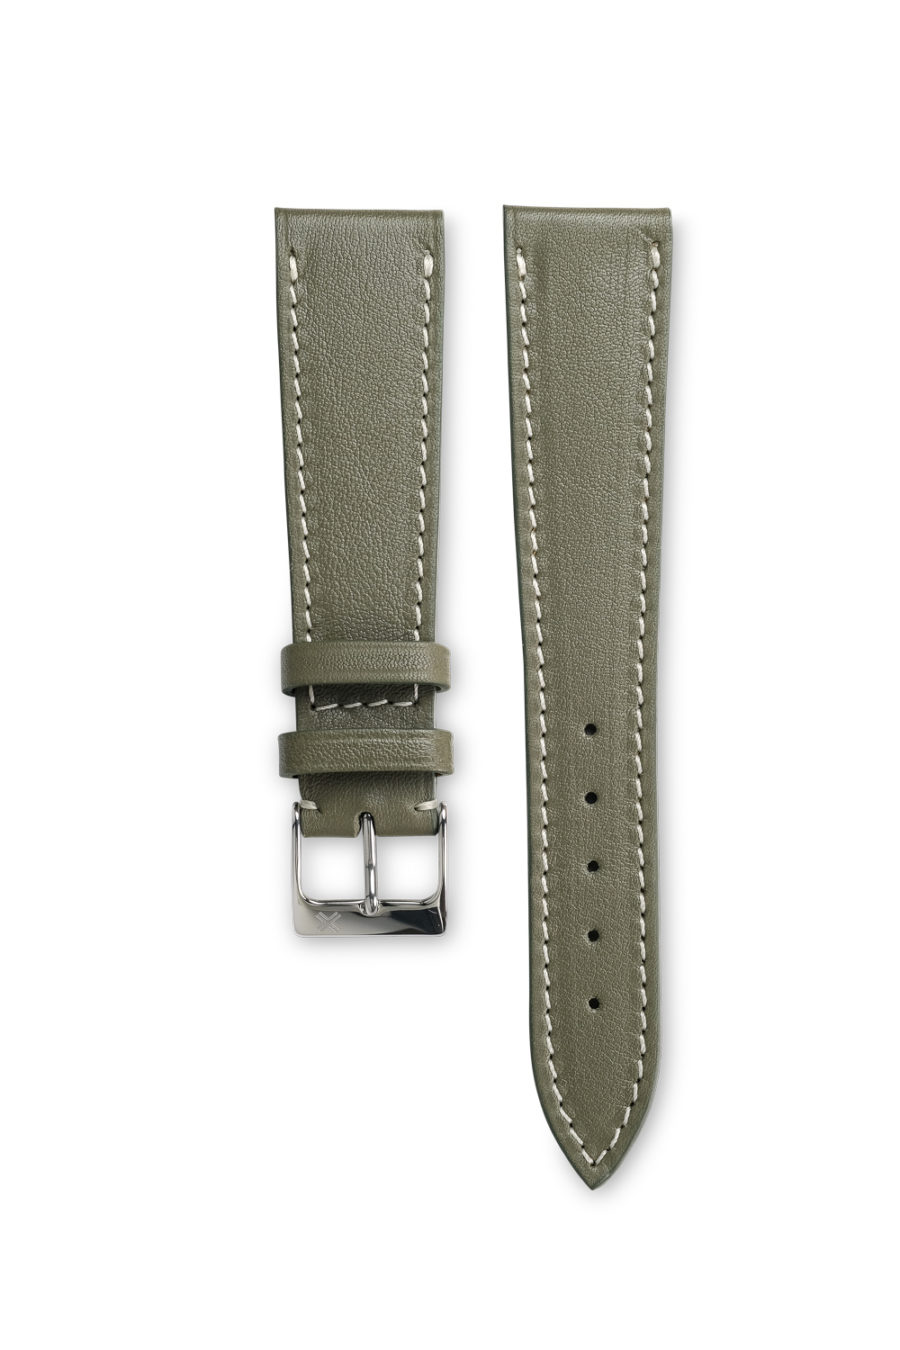 Smooth classic khaki green leather watch strap - cream stitching - LUGS brand